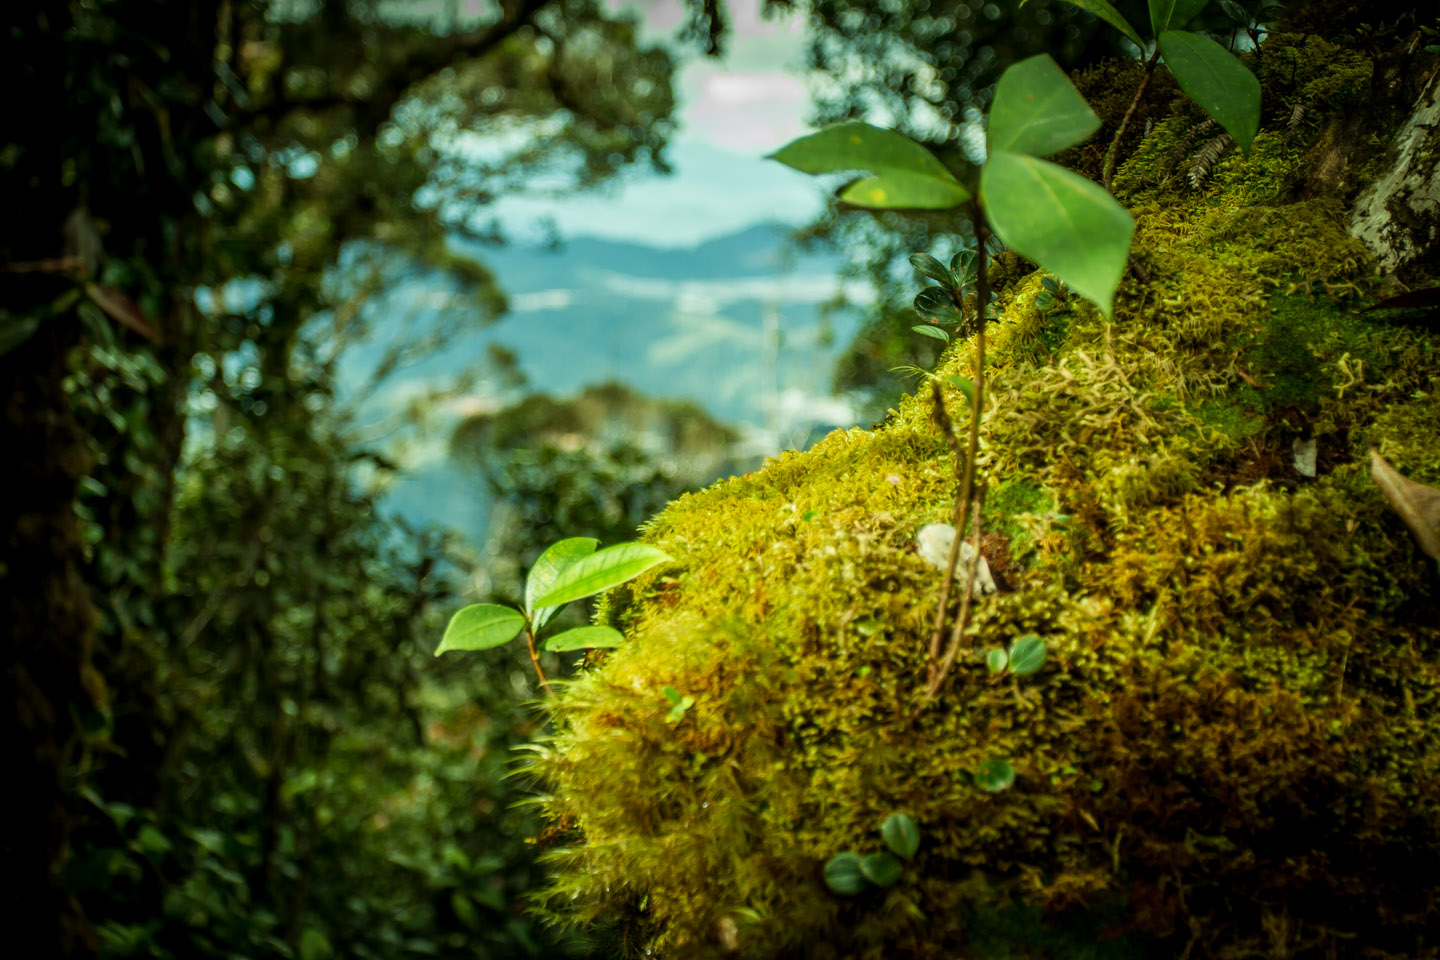 Plant and moos in the Mossy Forest Mount Gunung Batu Brinchang